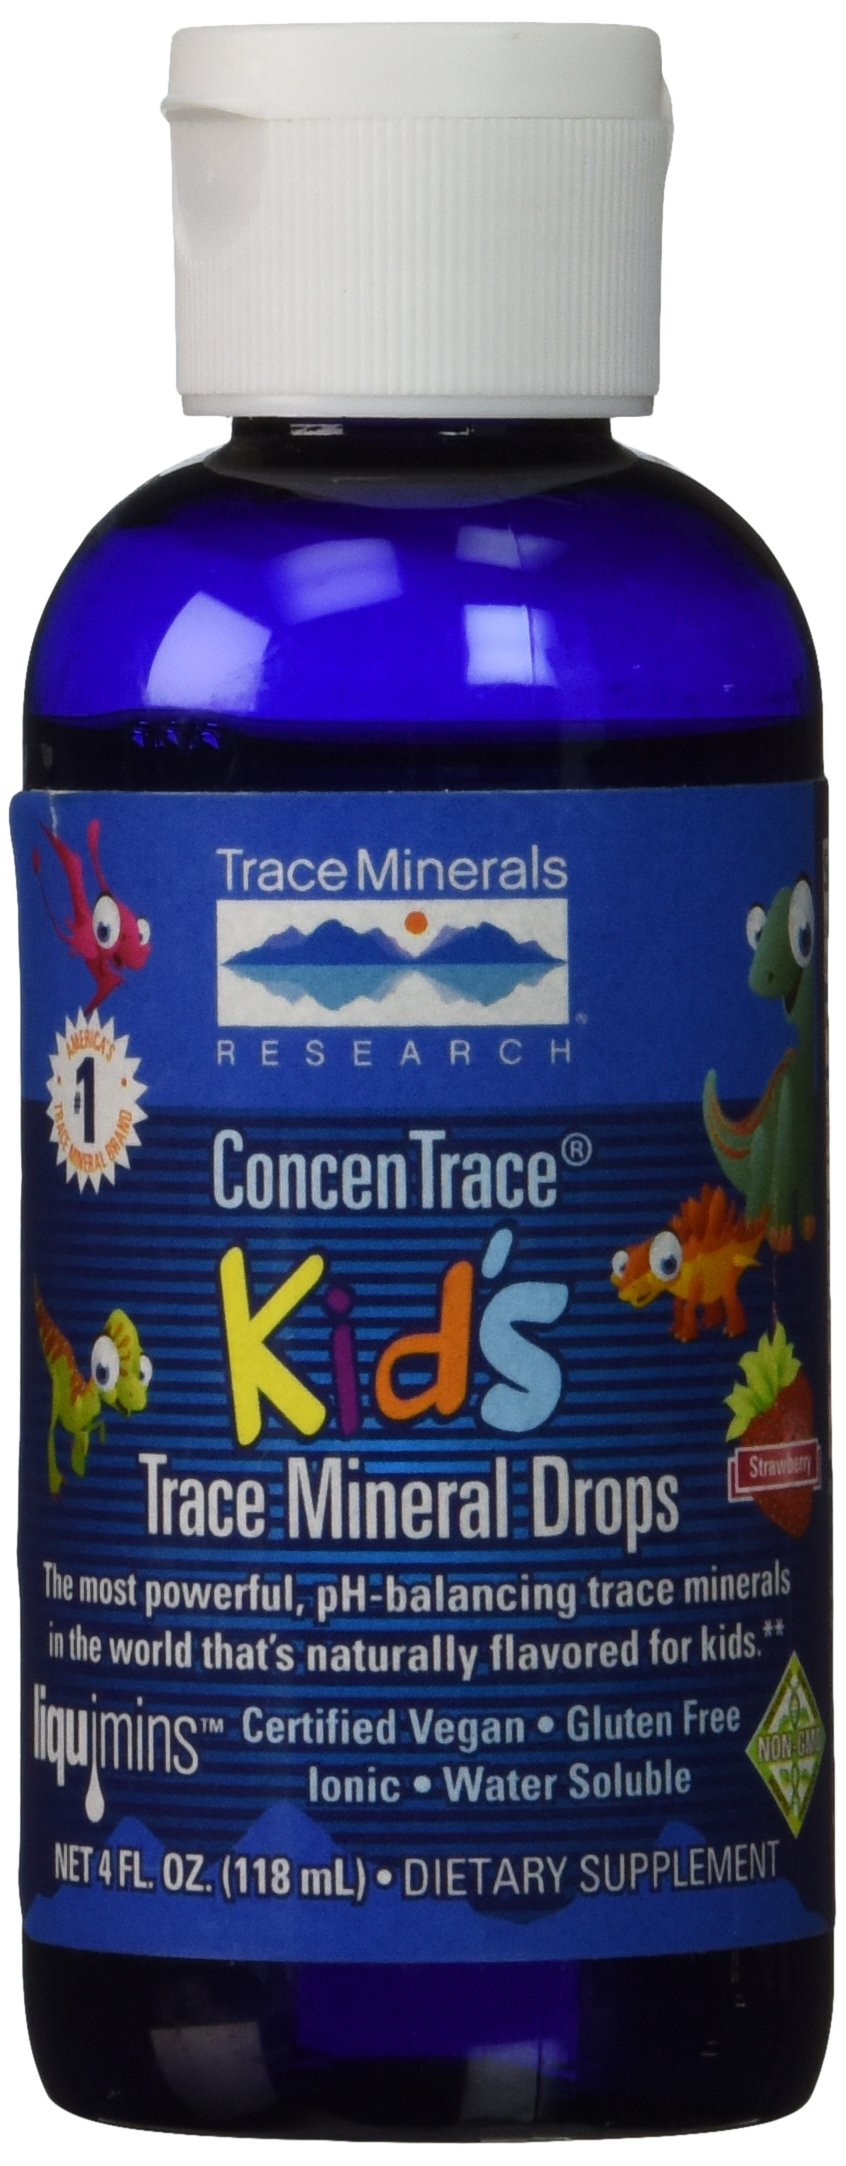 Trace Minerals Research Concentrate Kid's Trace Mineral Drops, 4 Fluid Ounce